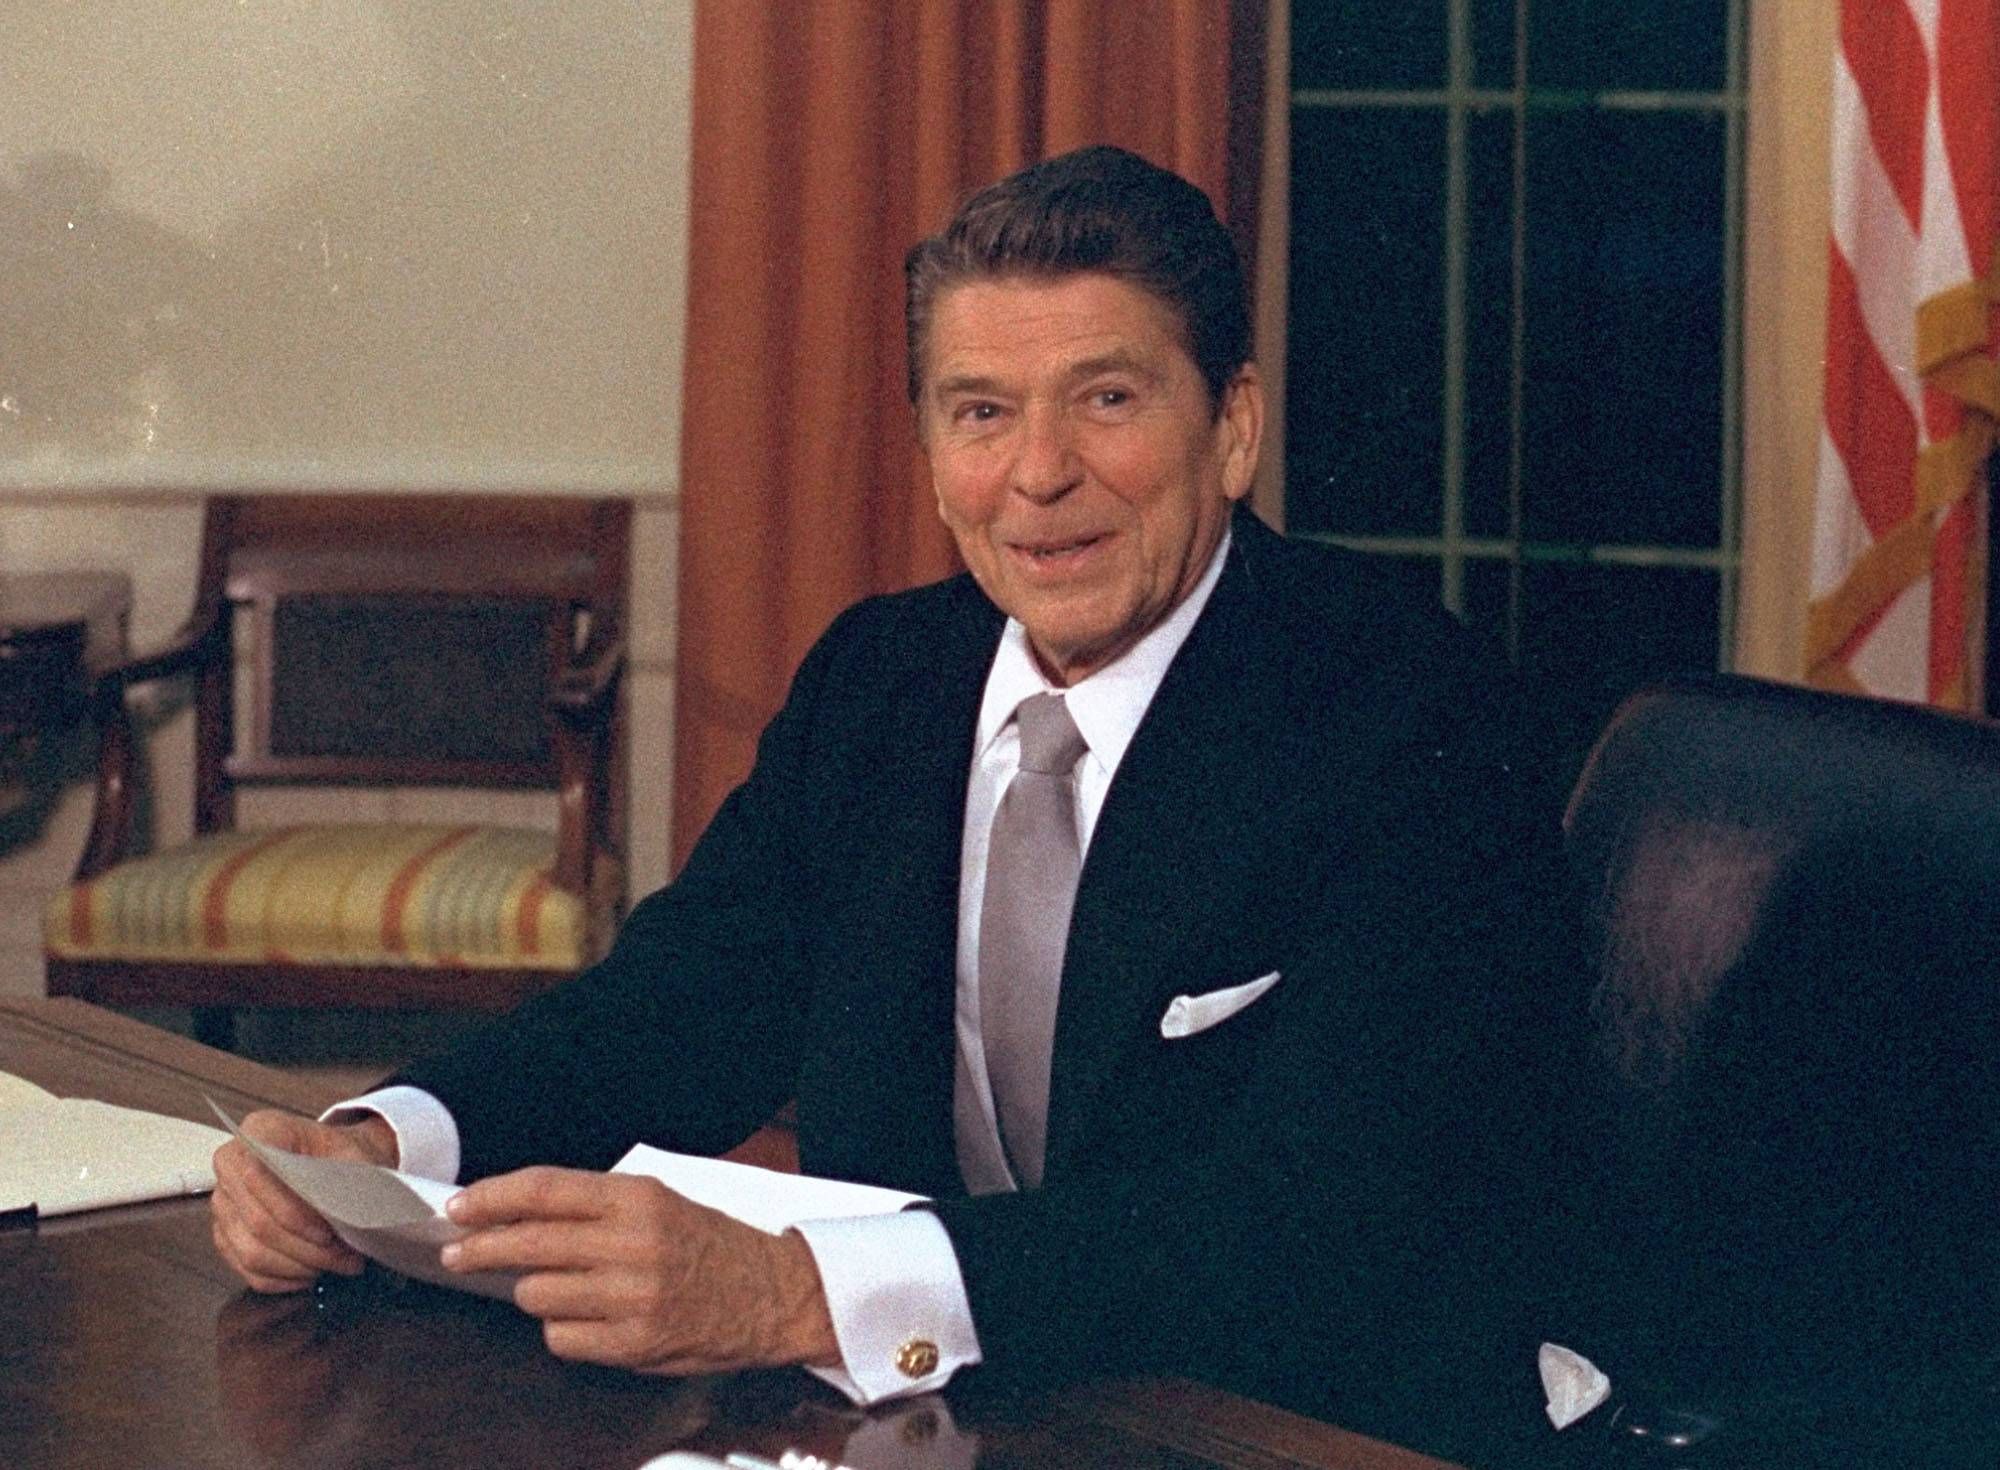 Facts Matter: Reagan did take his jacket off in Oval Office